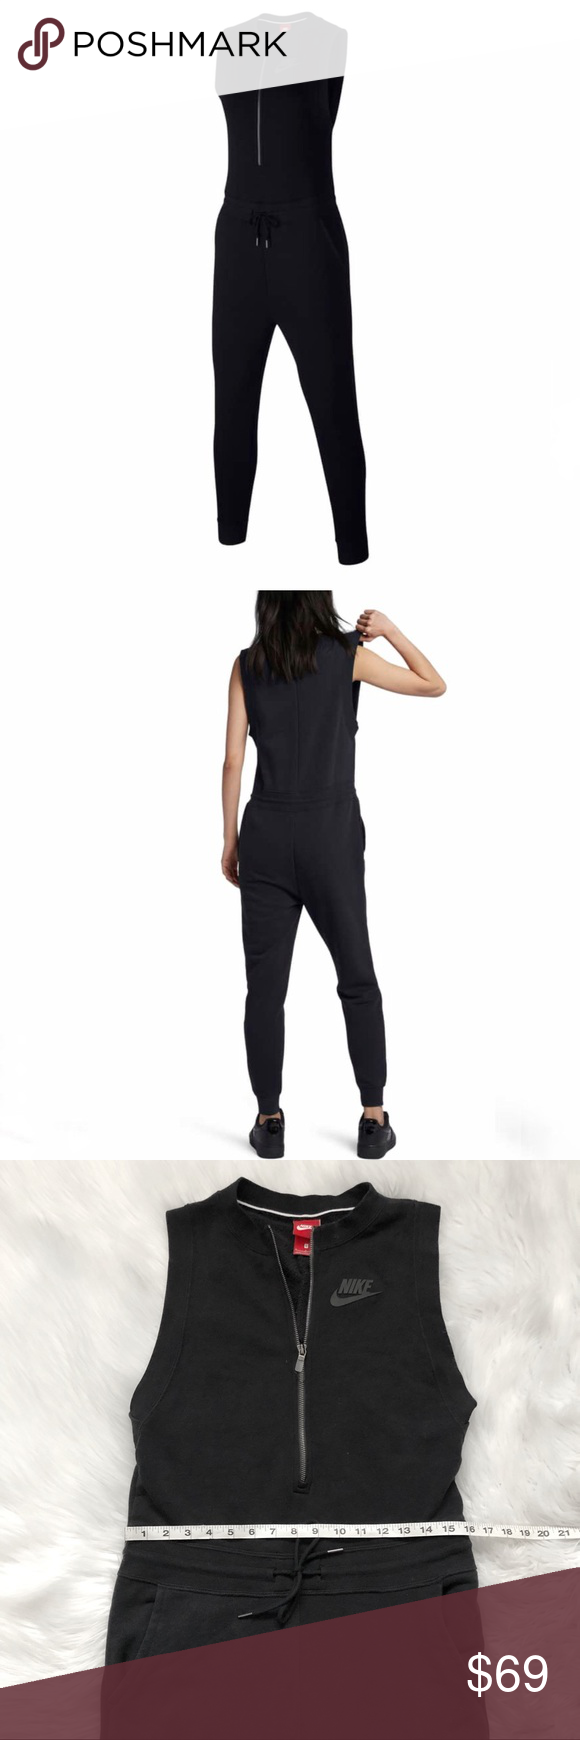 a2430eae3 Nike Sportswear Romper! NIKE Modern Romper Jumpsuit! Size S. Beautiful French  Terry jumpsuit. Front zip. Drawstring waist band. Measurements in the  photos.